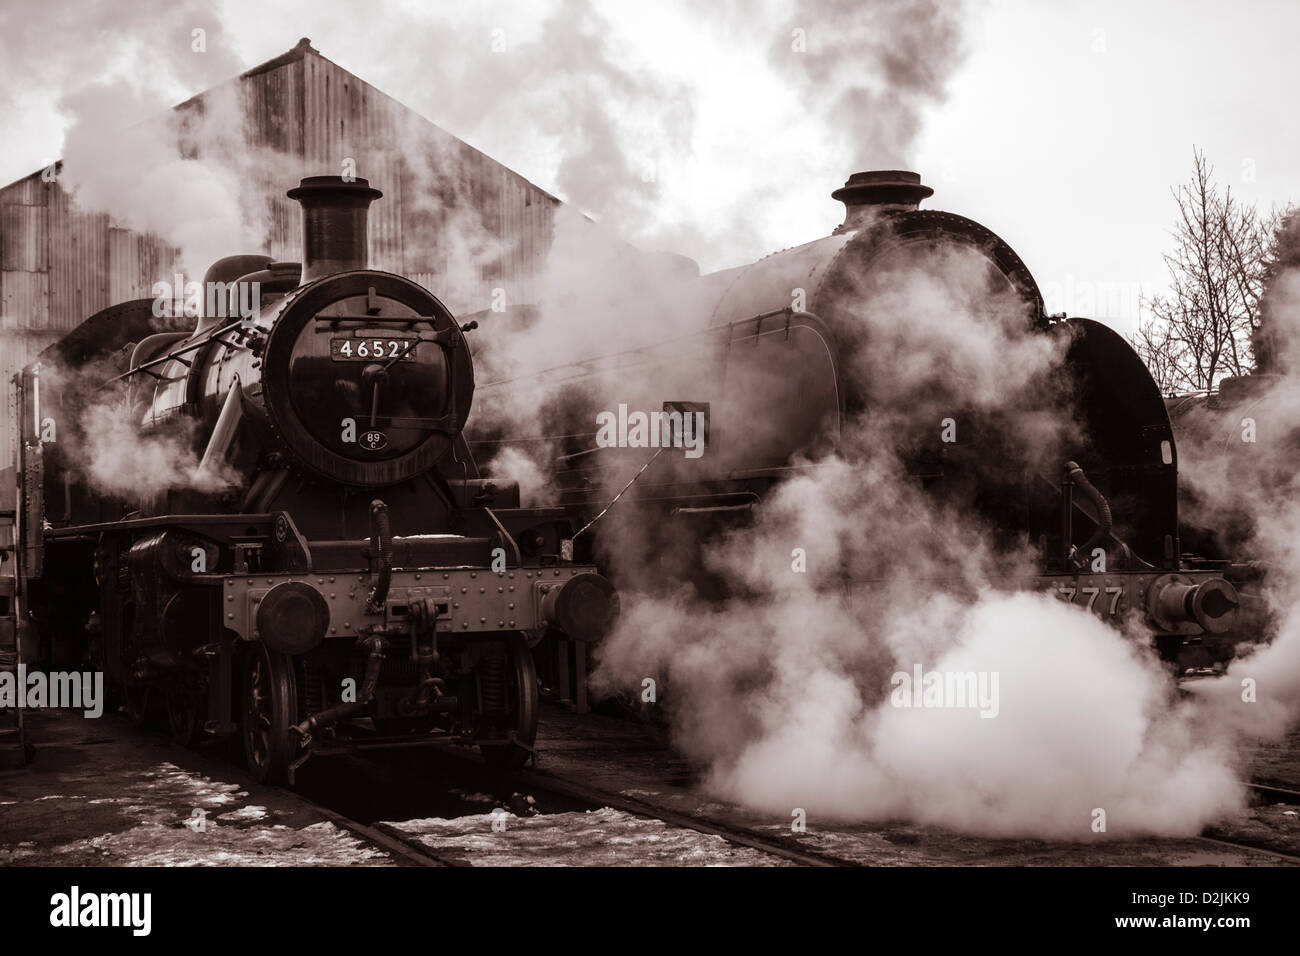 Steam locomotives outside engine shed Ivatt class number 46521 and King Arthur class Sir Lamiel number 30777 - Stock Image